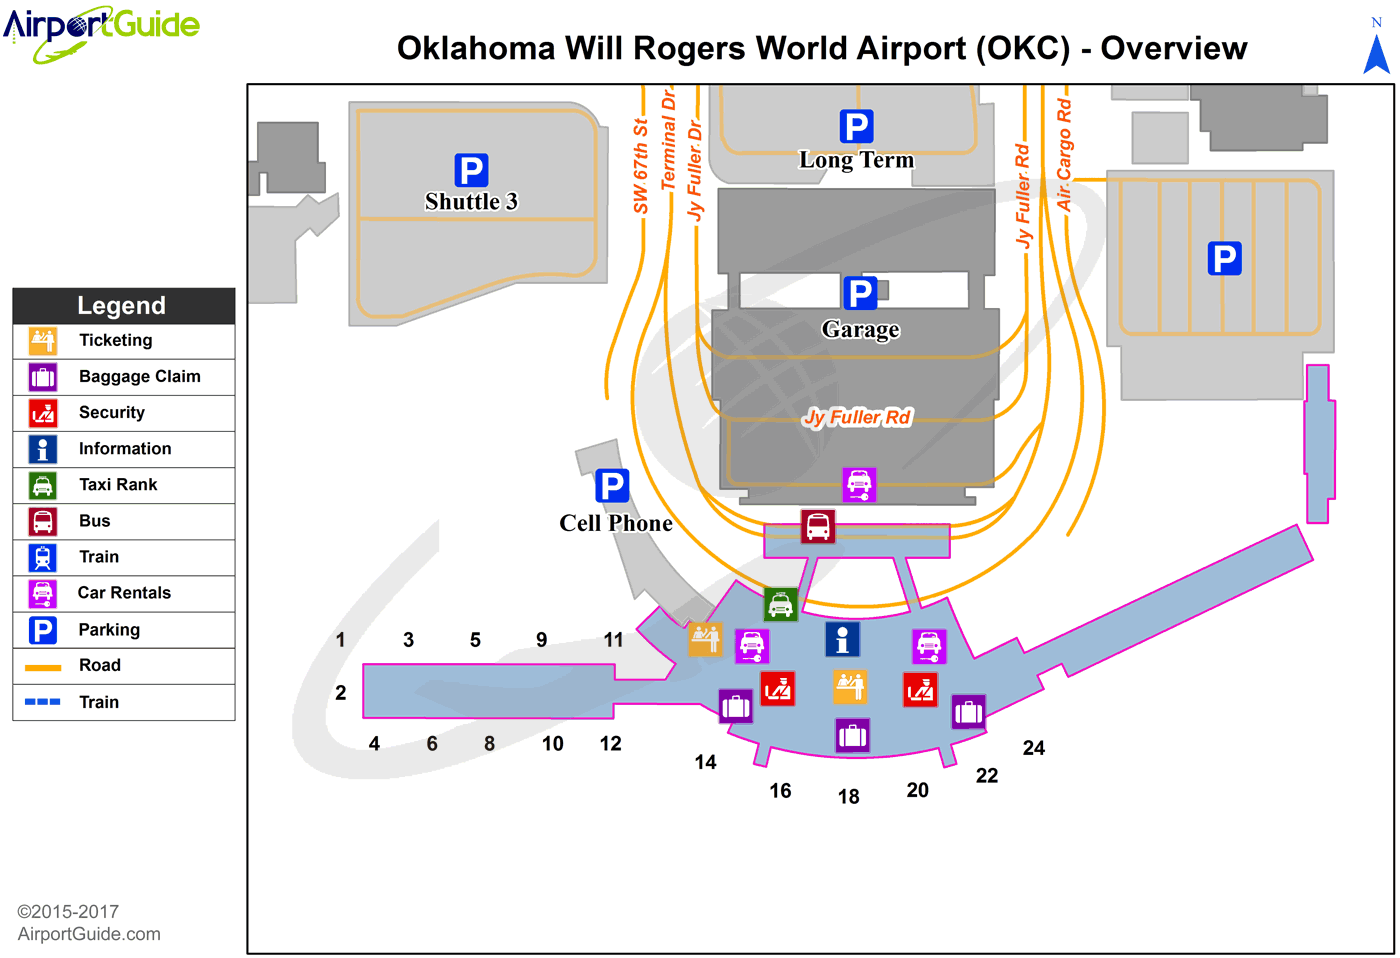 Oklahoma City - Will Rogers World (OKC) Airport Terminal Map - Overview